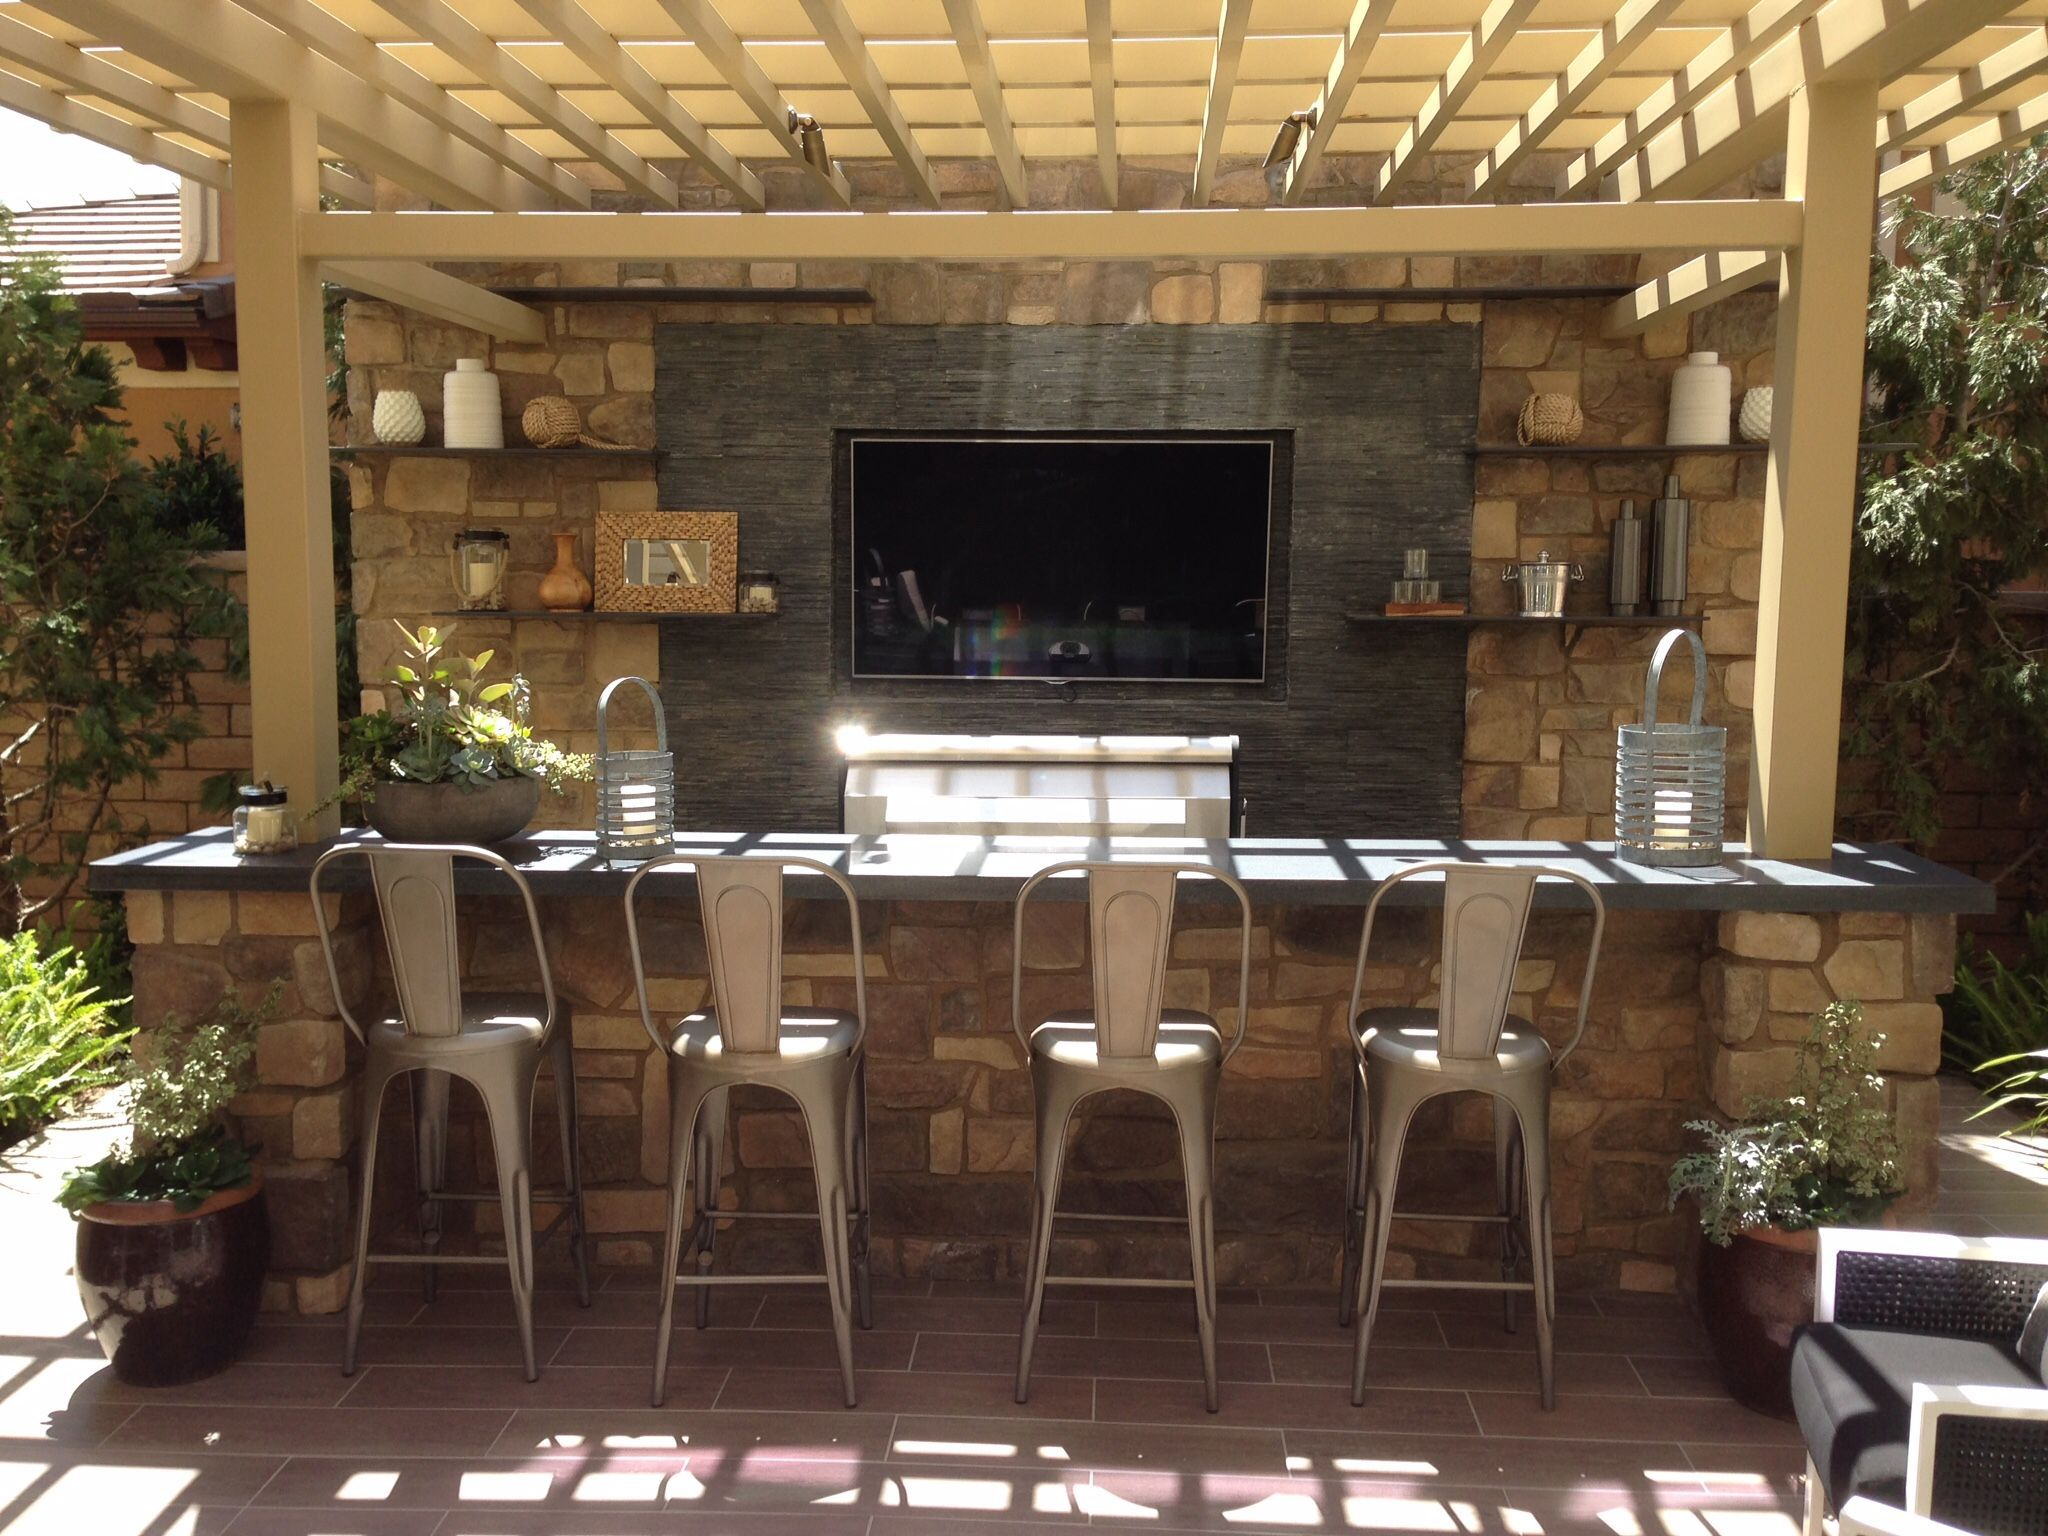 image result for outdoor kitchen with tv outdoor kitchen modern outdoor kitchen tv in kitchen on outdoor kitchen tv id=58952